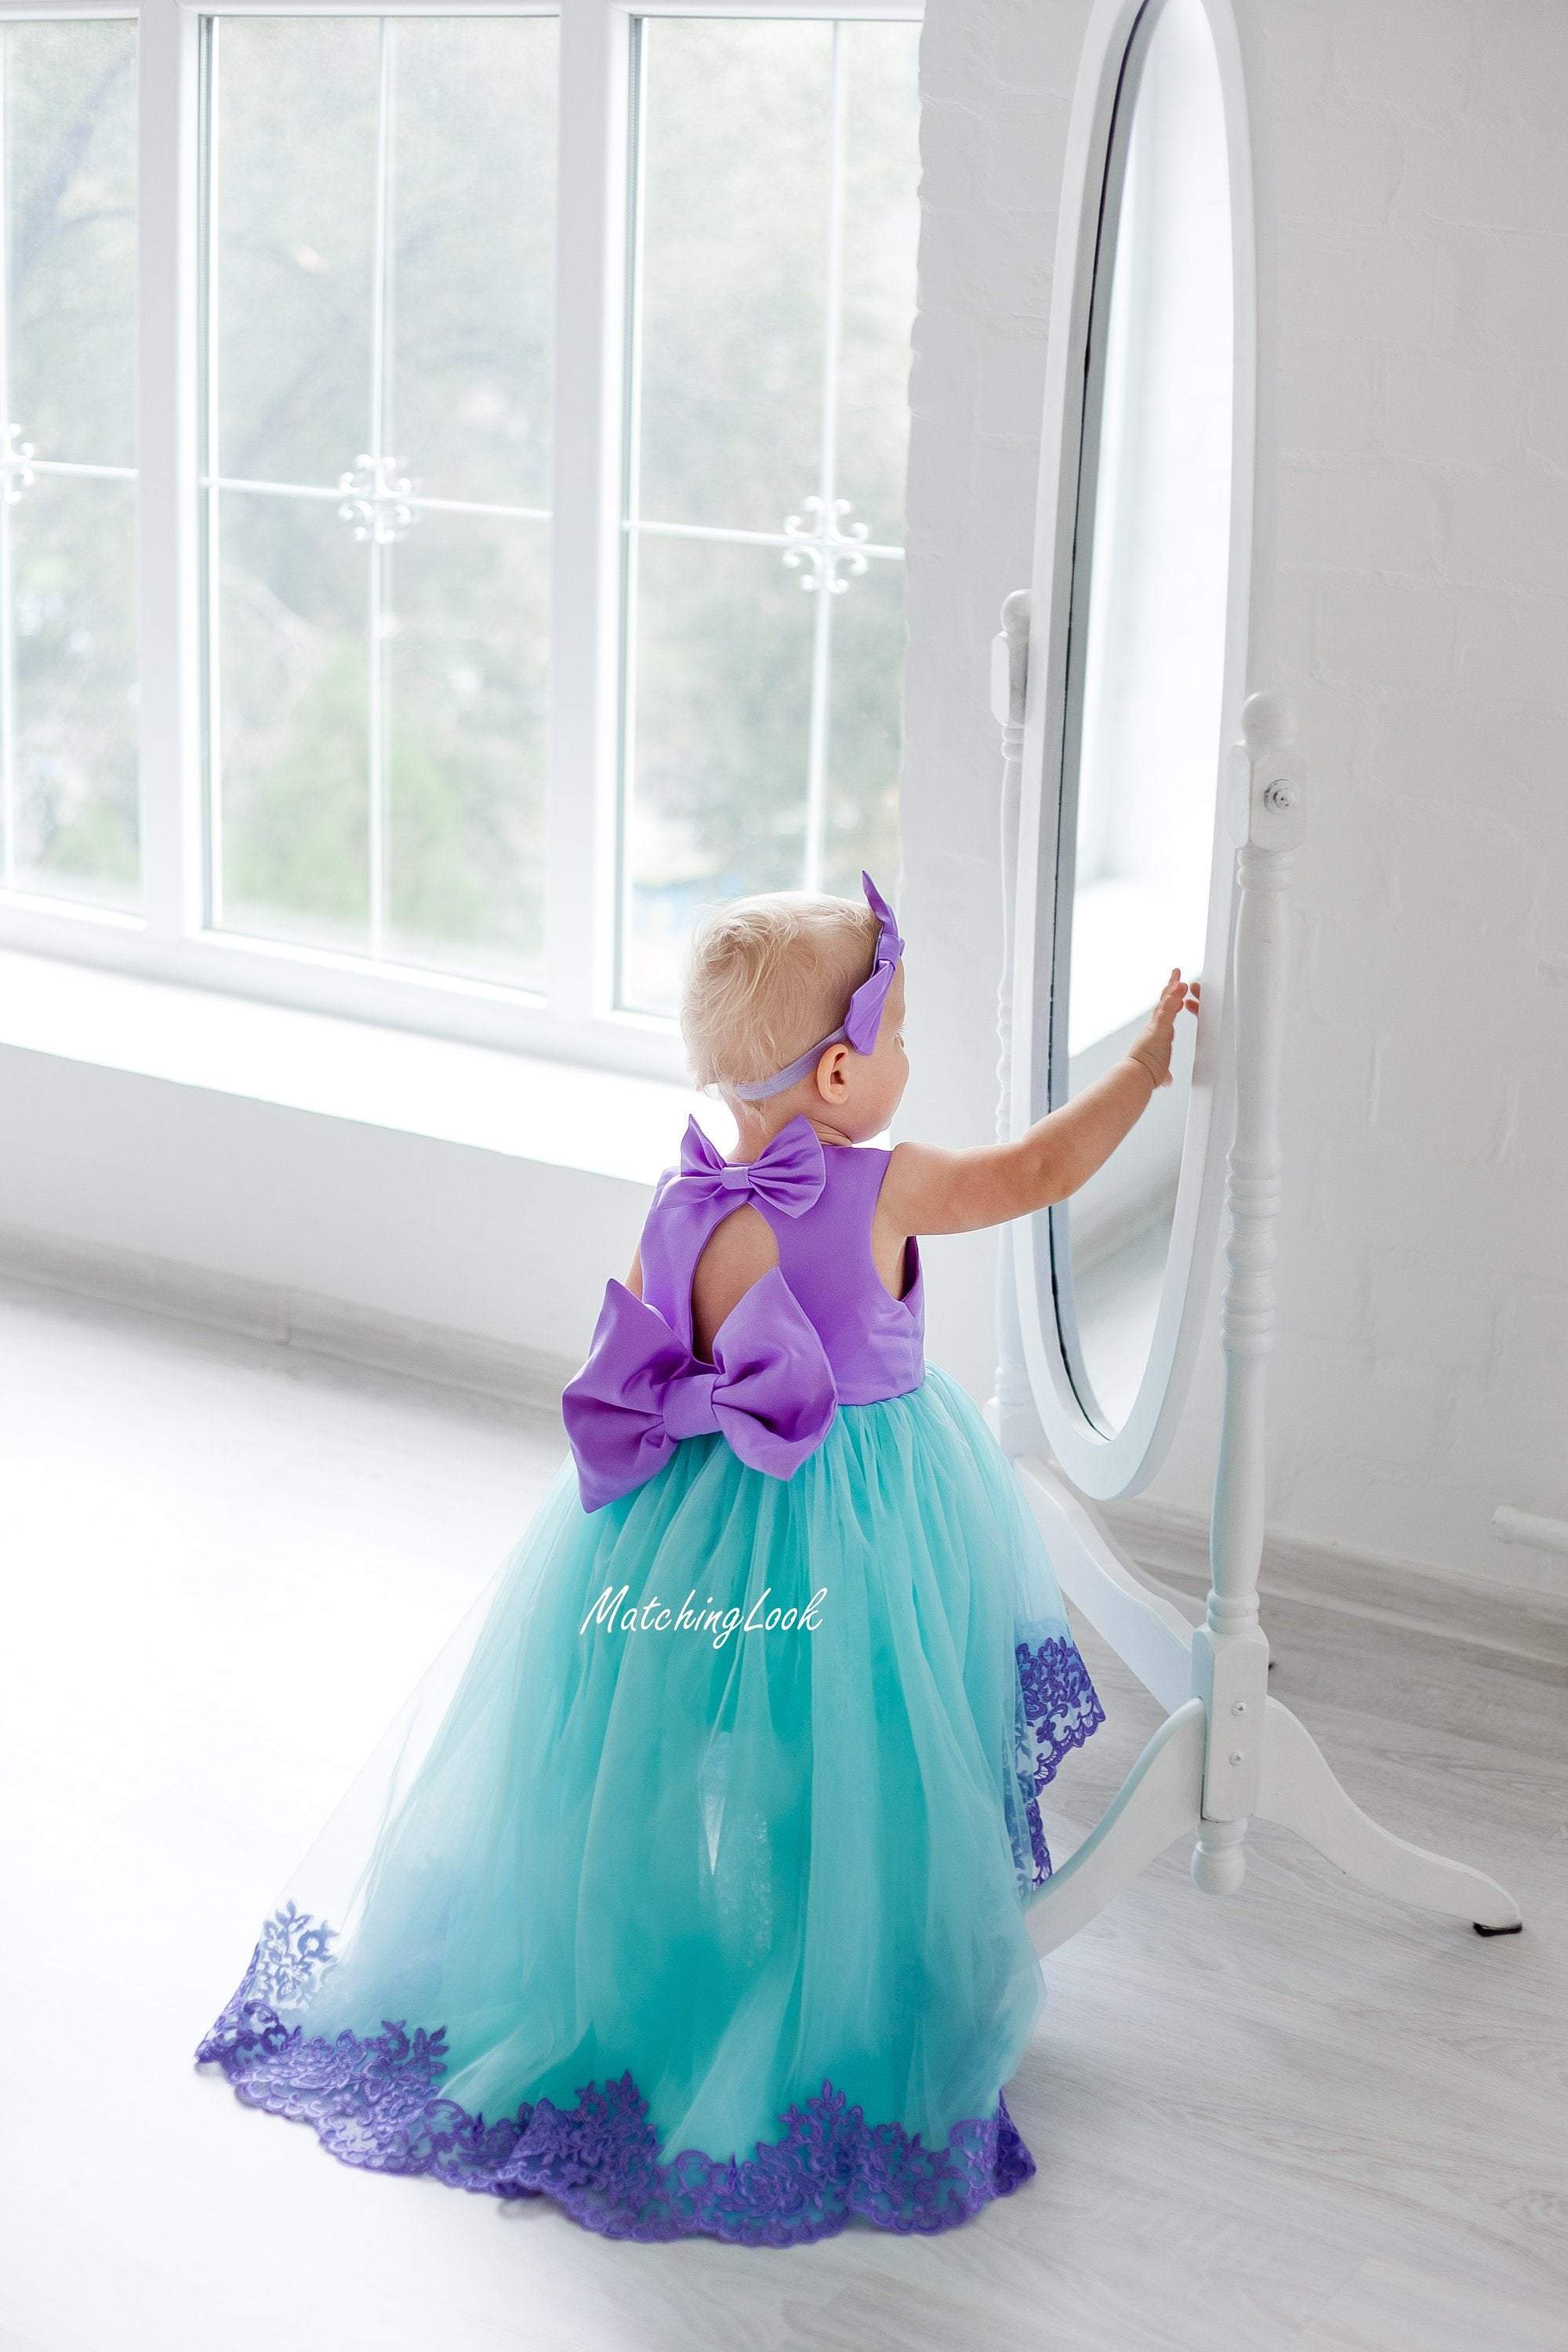 981c22512 Ariel Dress - Little Mermaid Dress - 1st birthday outfit - birthday party  costume - Princess